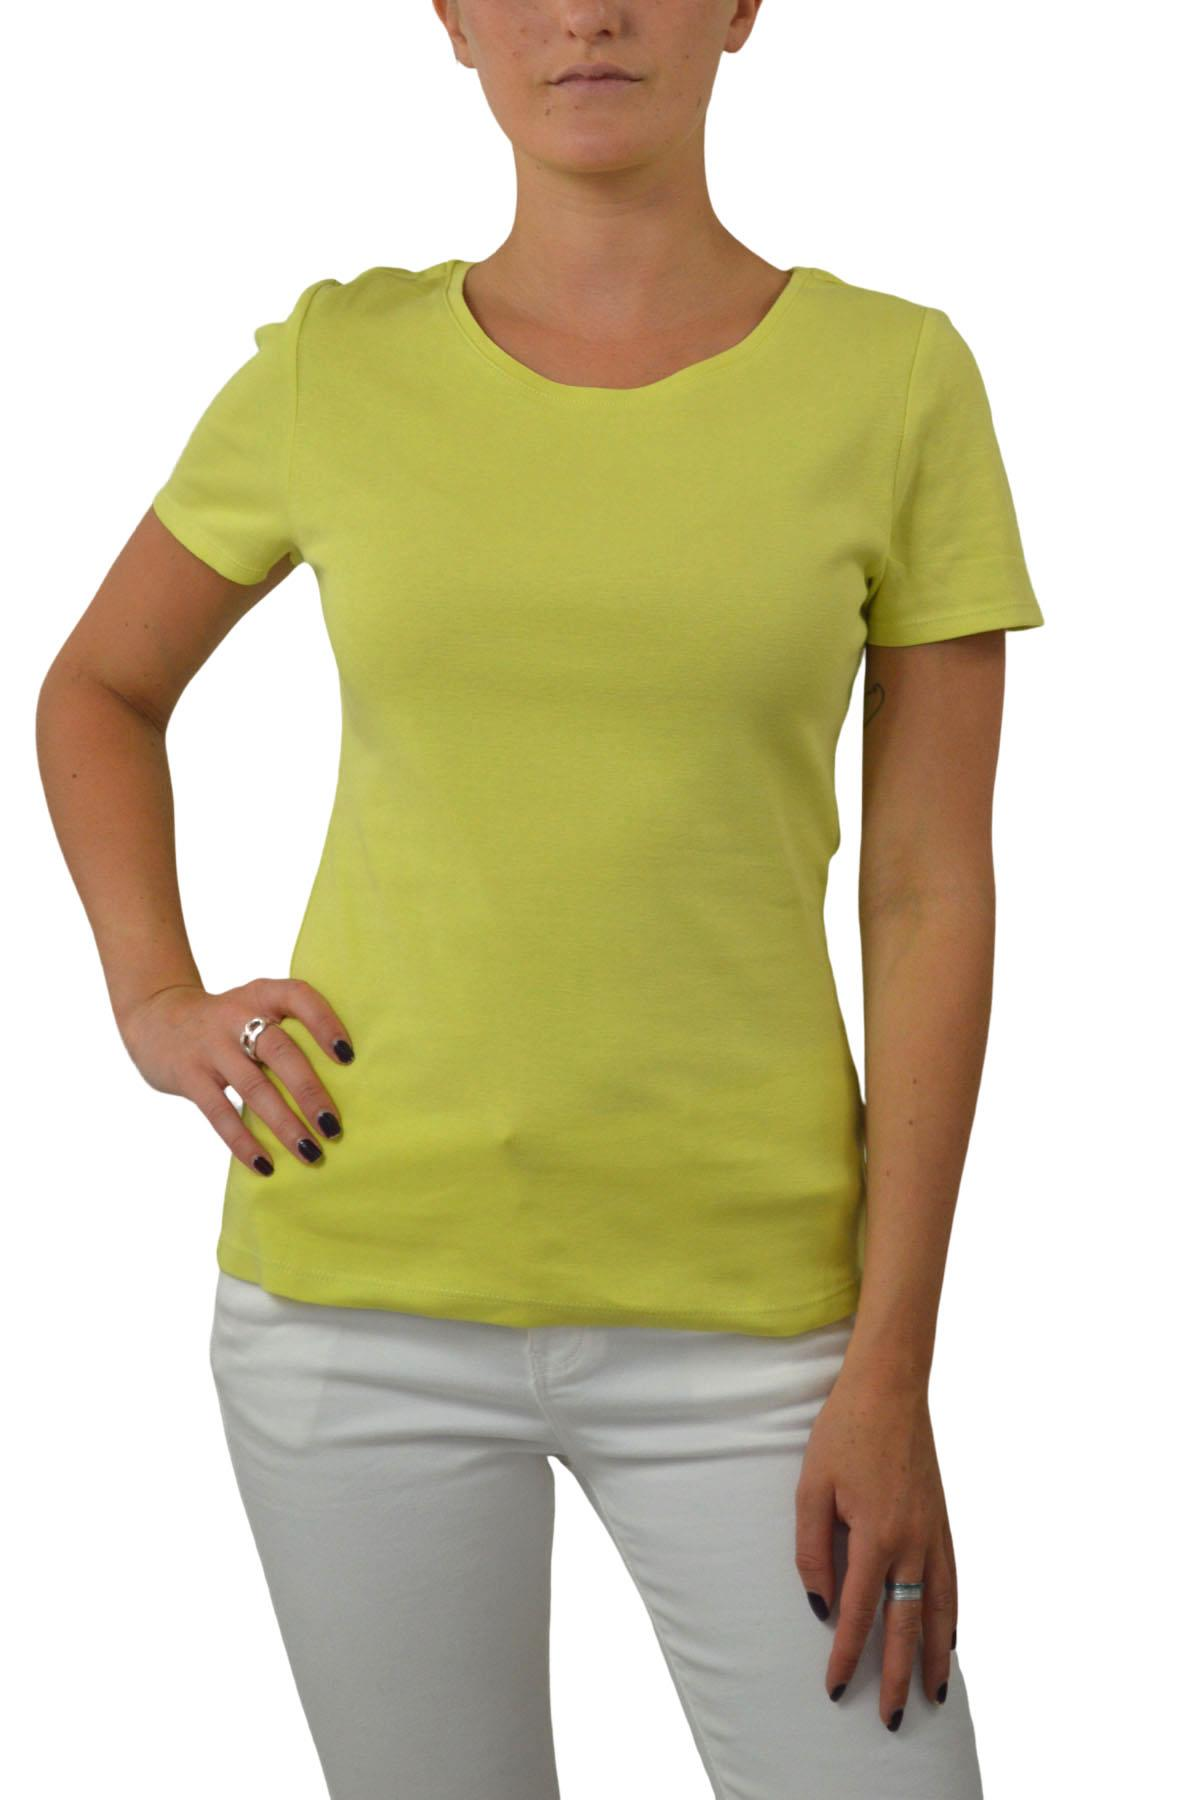 NEW-Ex-M-amp-S-Ladies-Short-Sleeve-Cotton-T-Shirt-Slim-Fit-Curved-Hem-Size-4-to-24 thumbnail 12